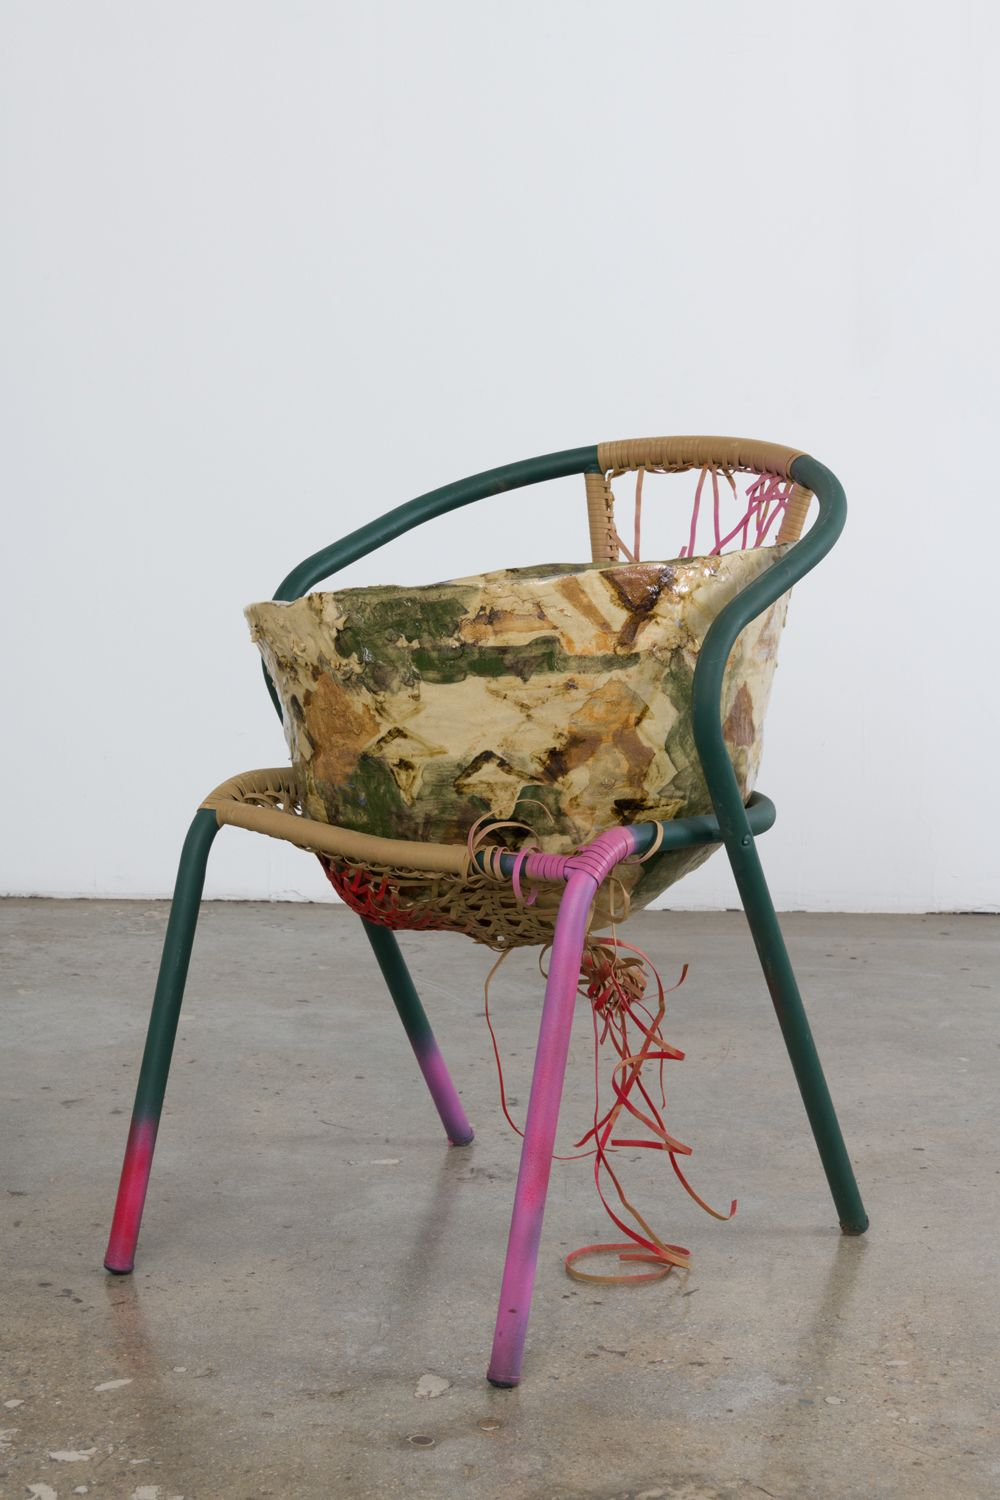 a chair with a ceramic artwork sculpture by jessica jackson hutchins for sale